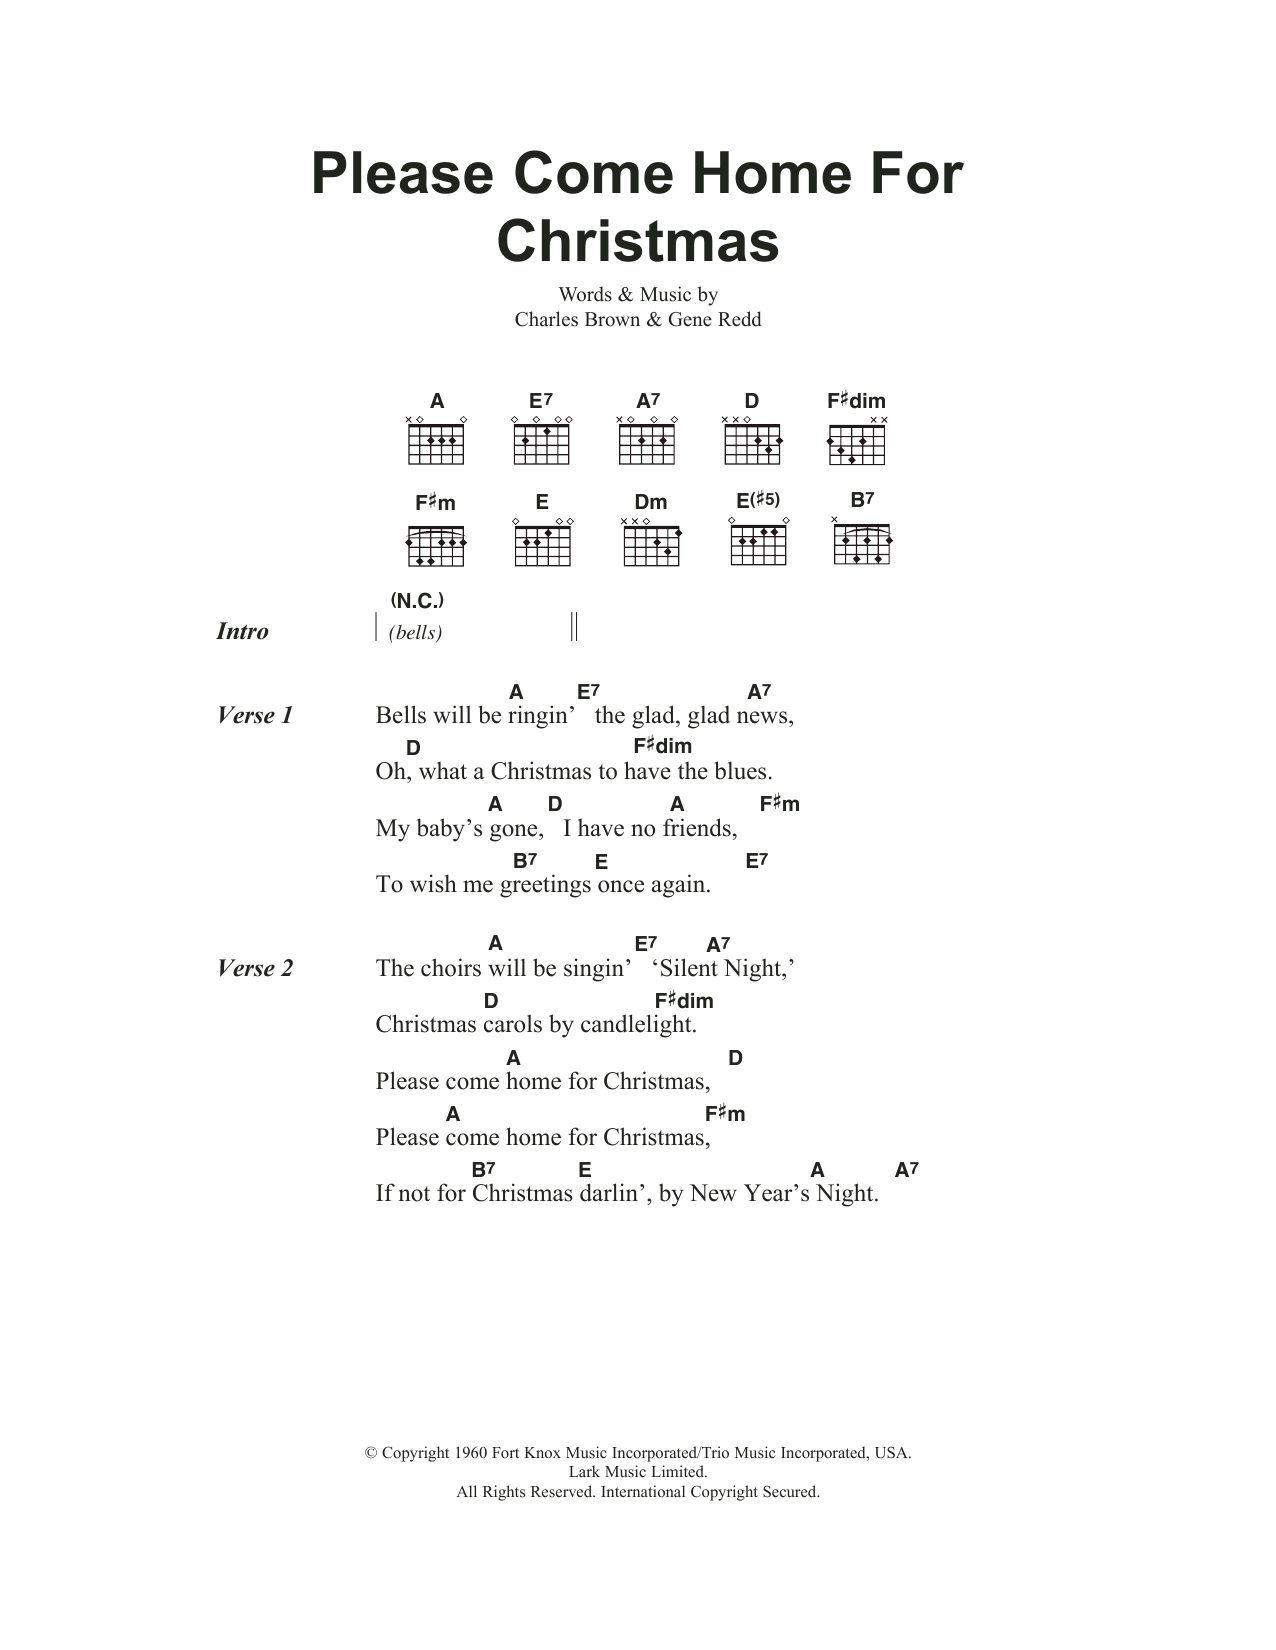 Eagles - Please Come Home For Christmas at Stanton\'s Sheet Music